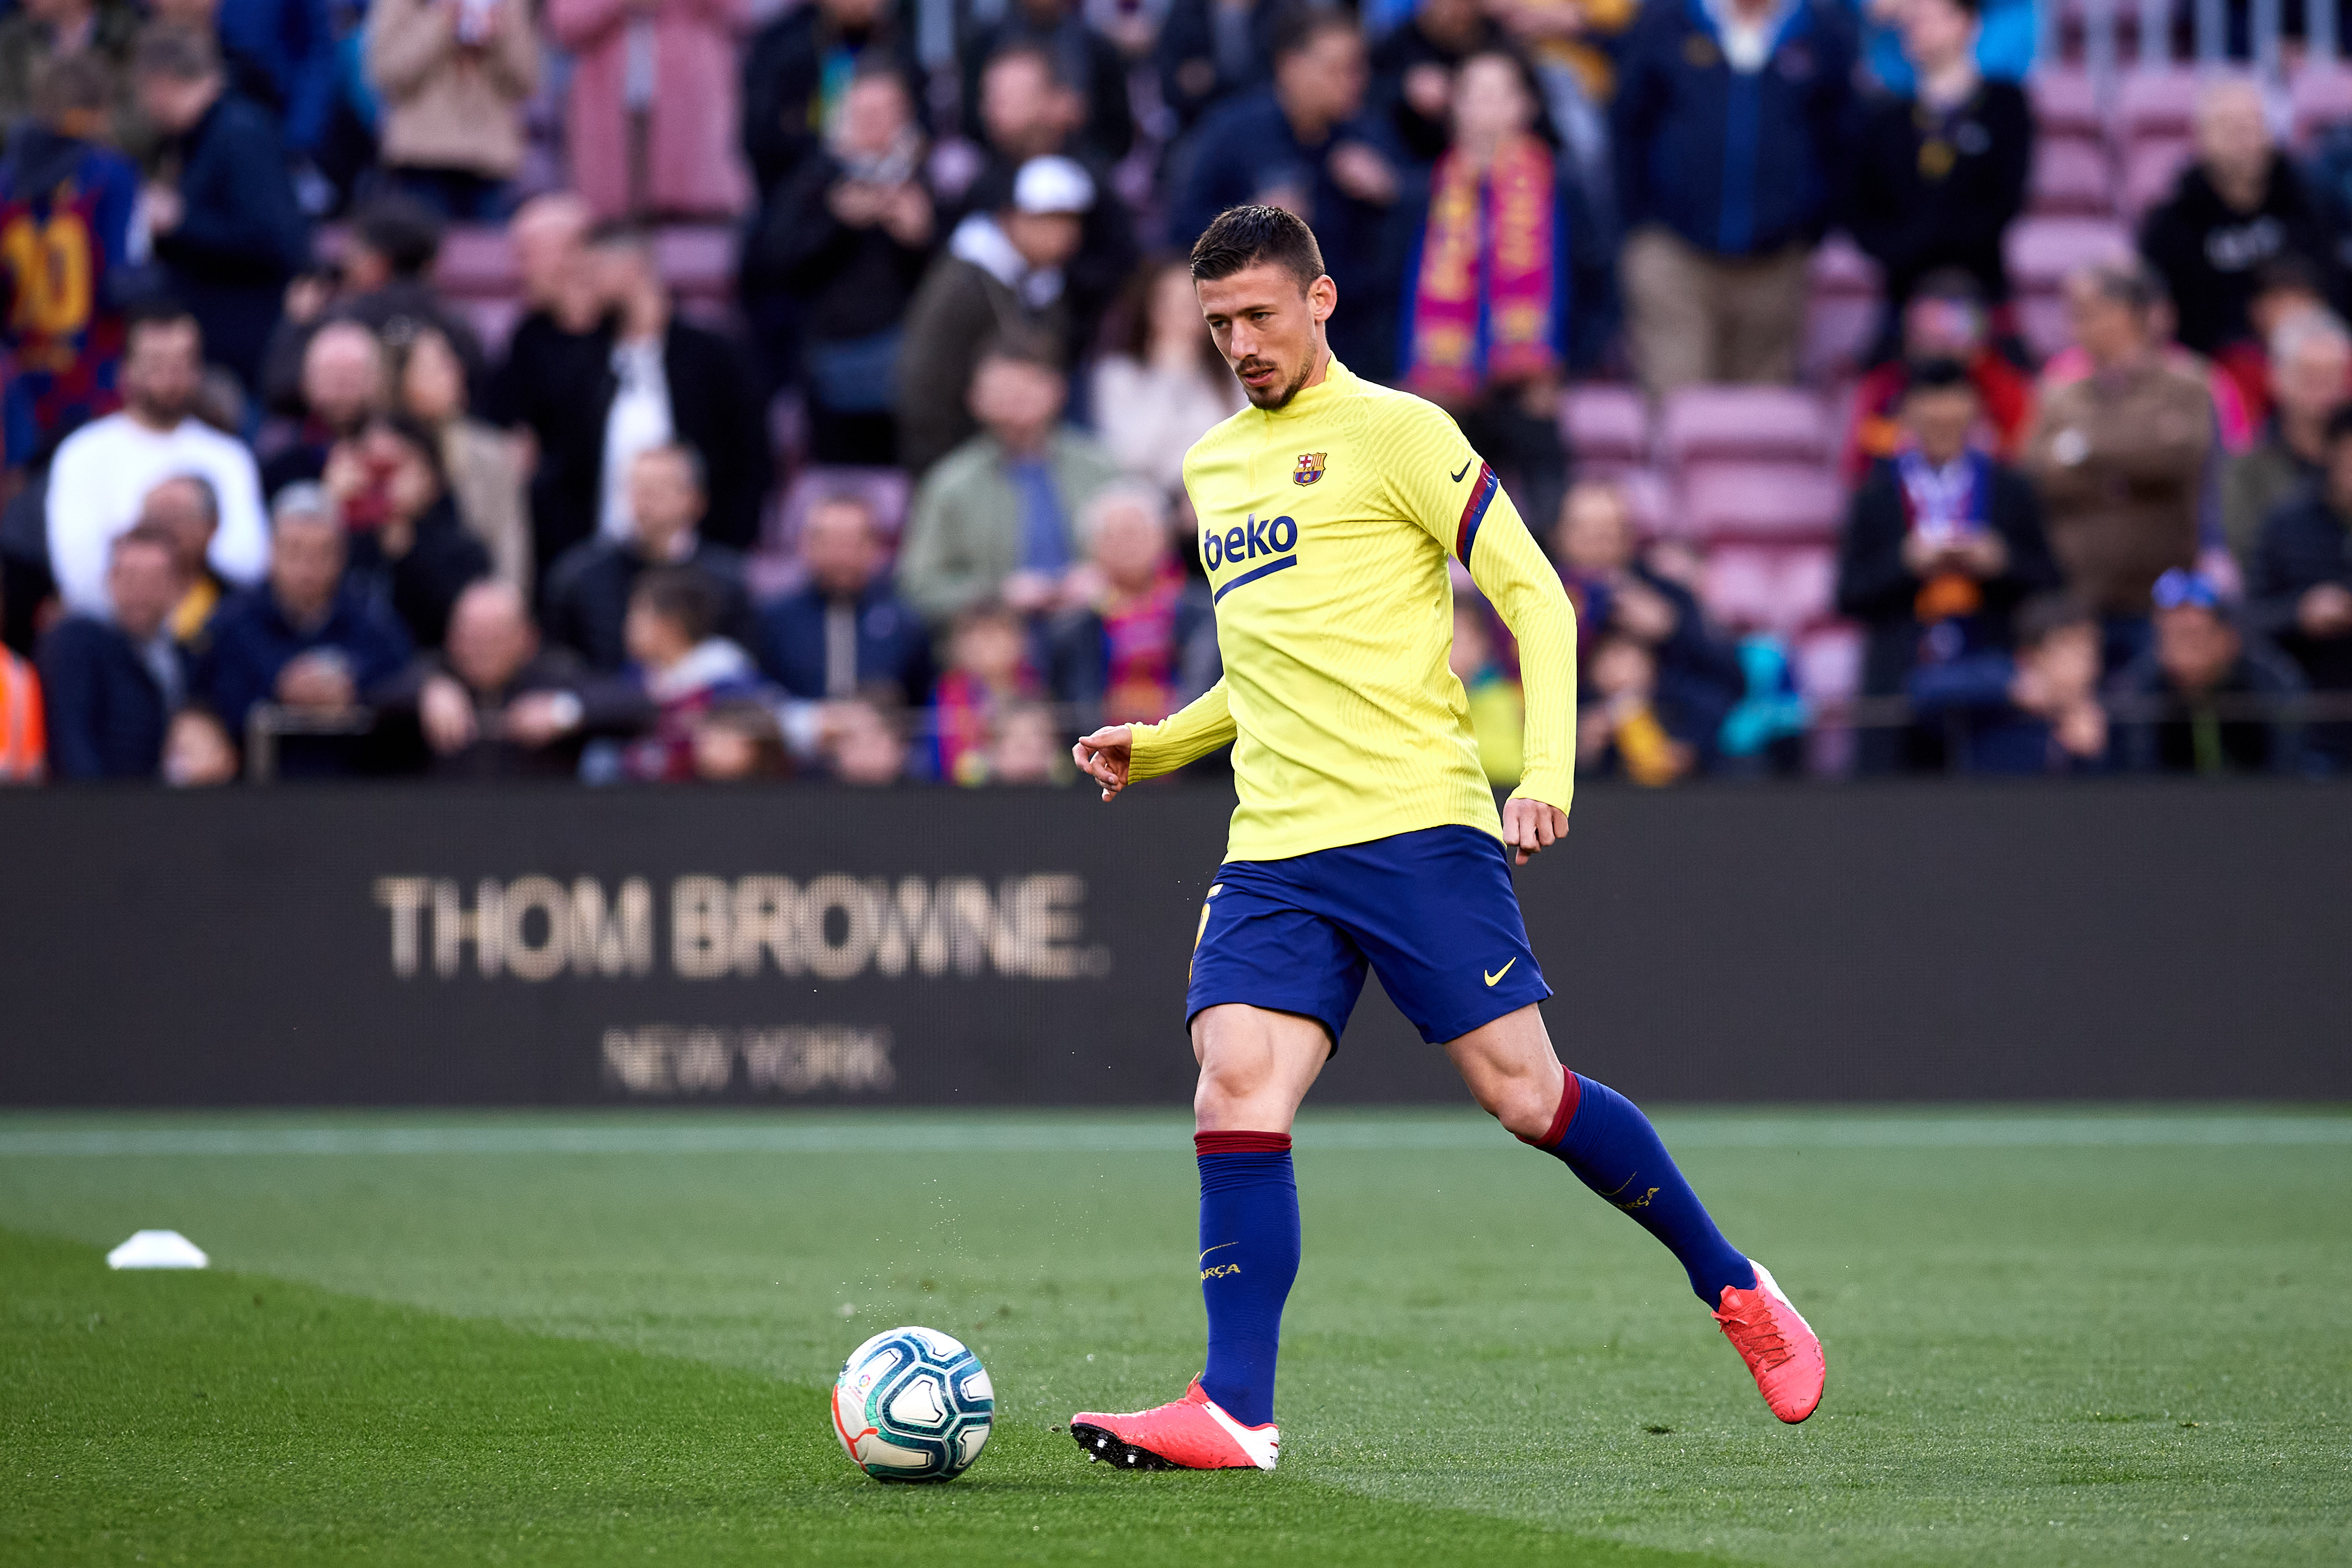 Barcelona looking to extend Clement Lenglet's contract (Lenglet is in action in the photo)